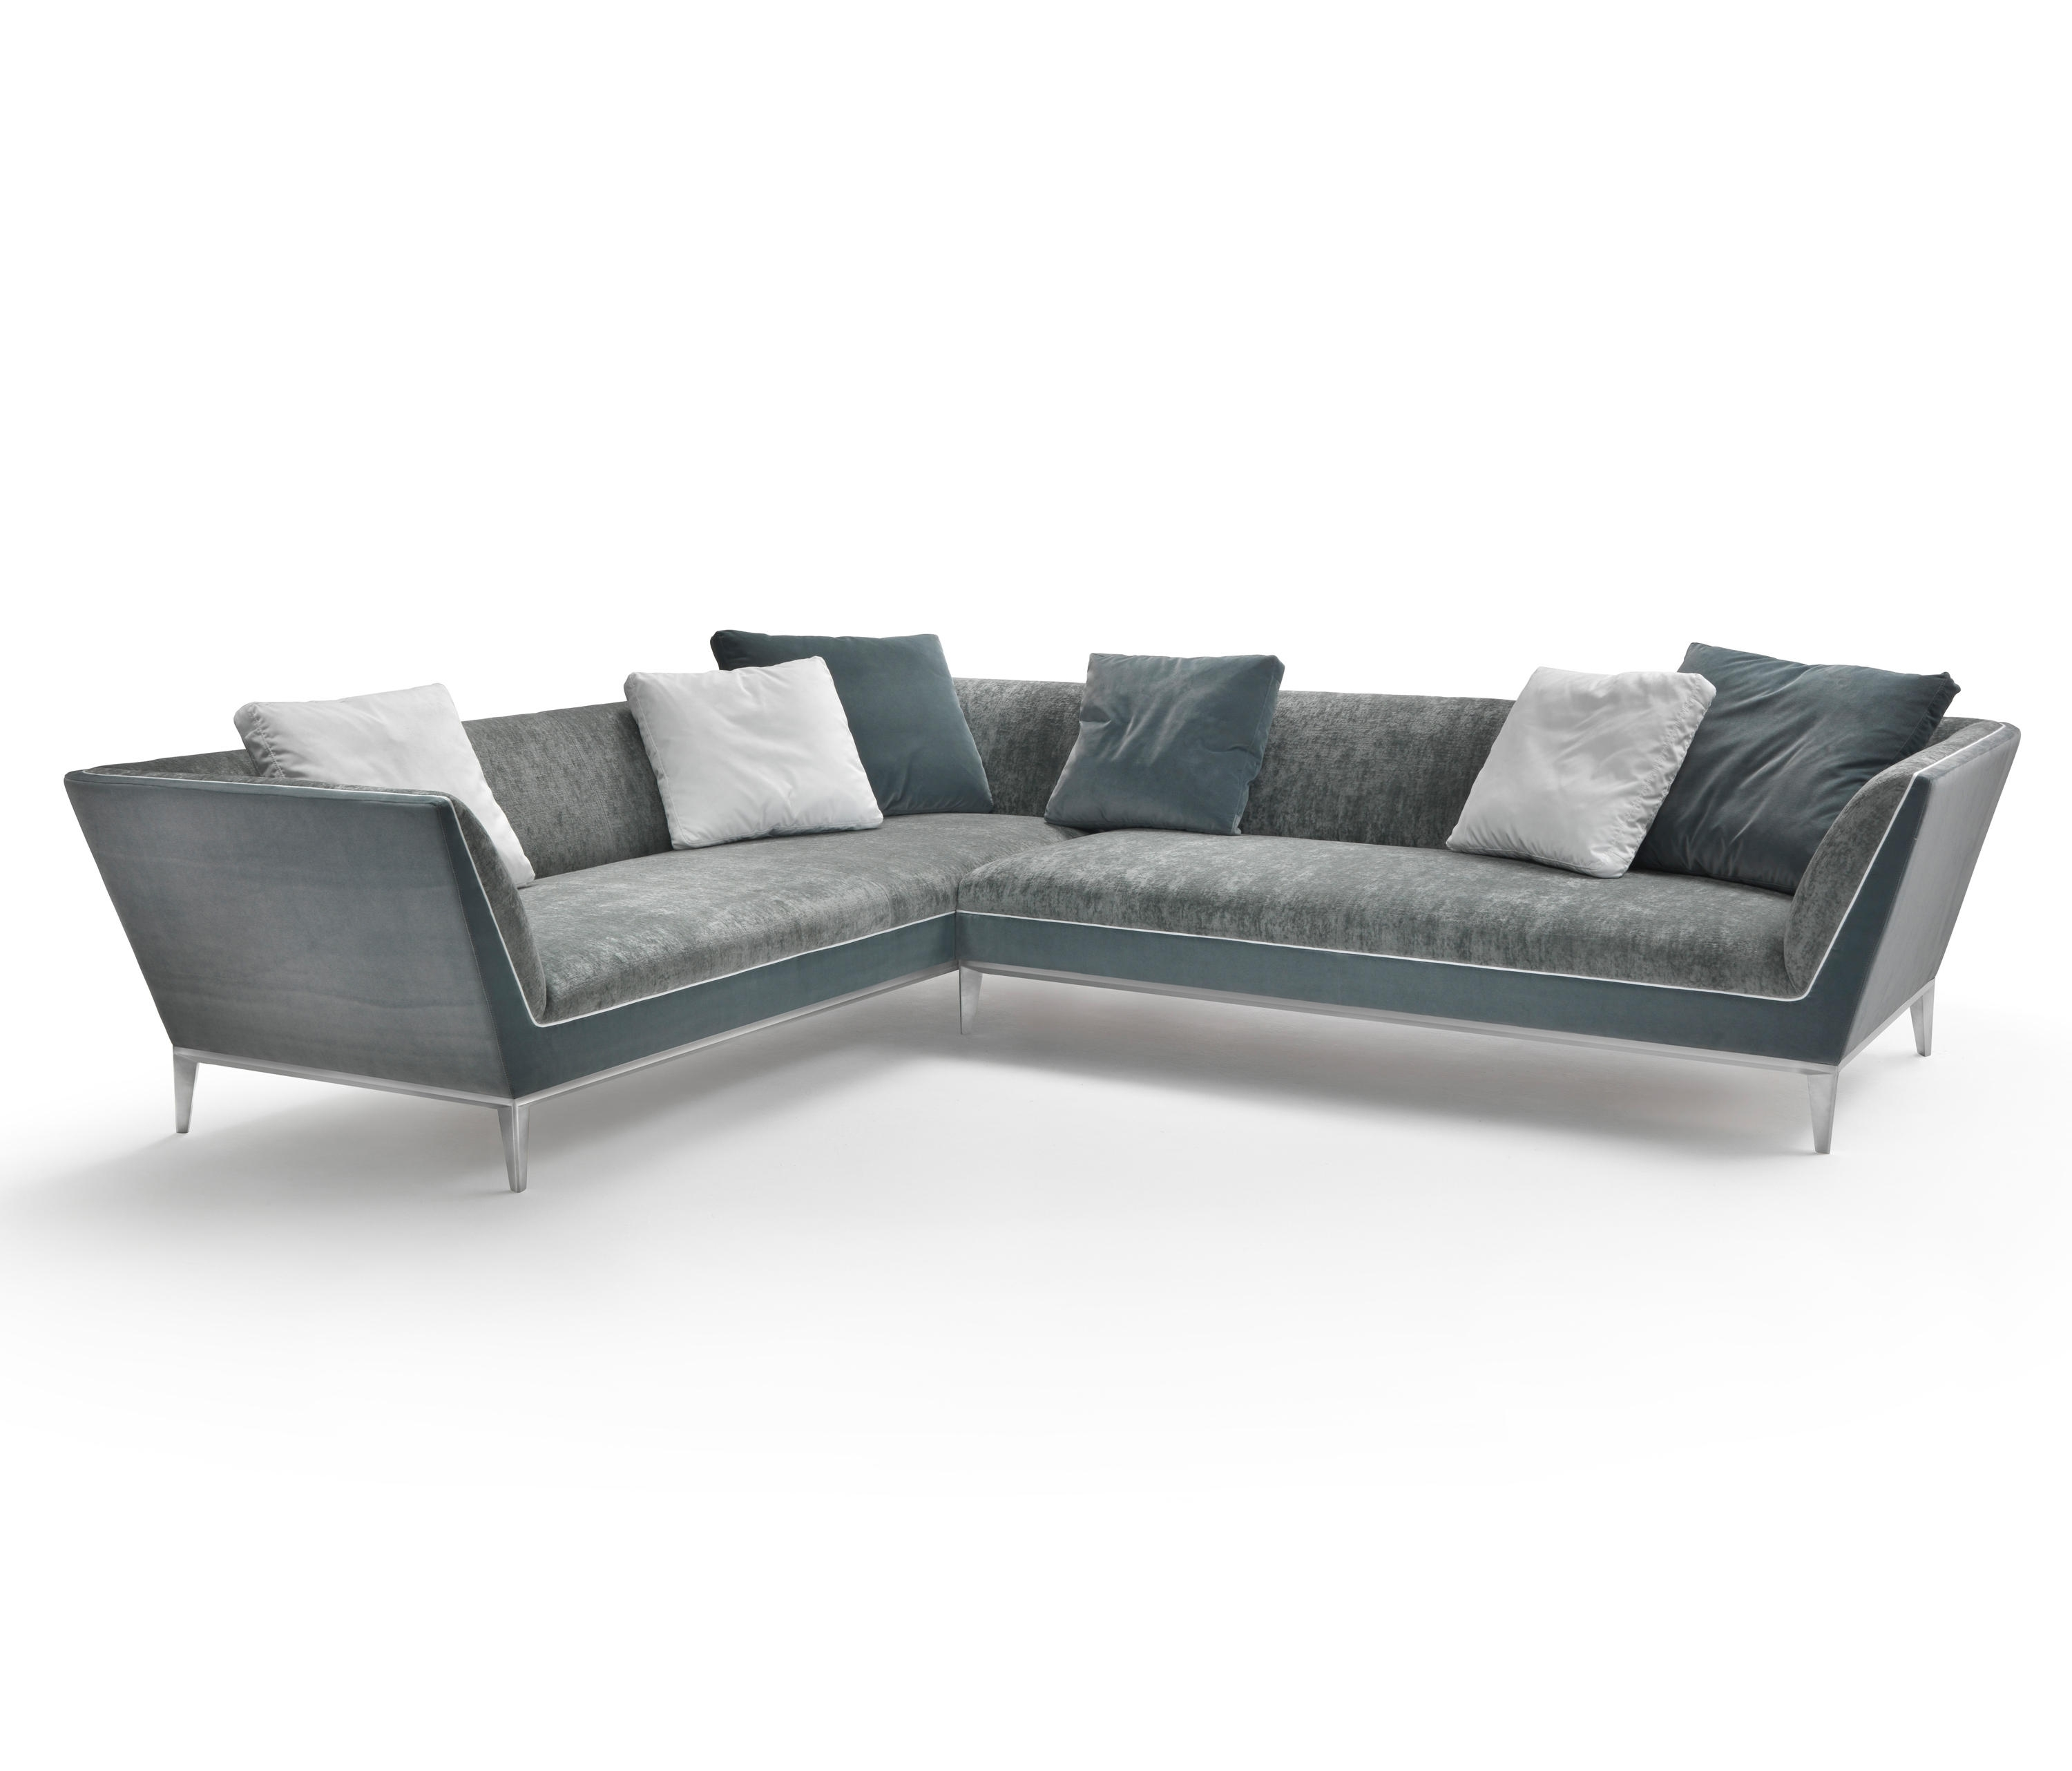 Newest Tiny Sofas In Living Room : Modular Sofas For Small Spaces Small Couch For (View 10 of 20)